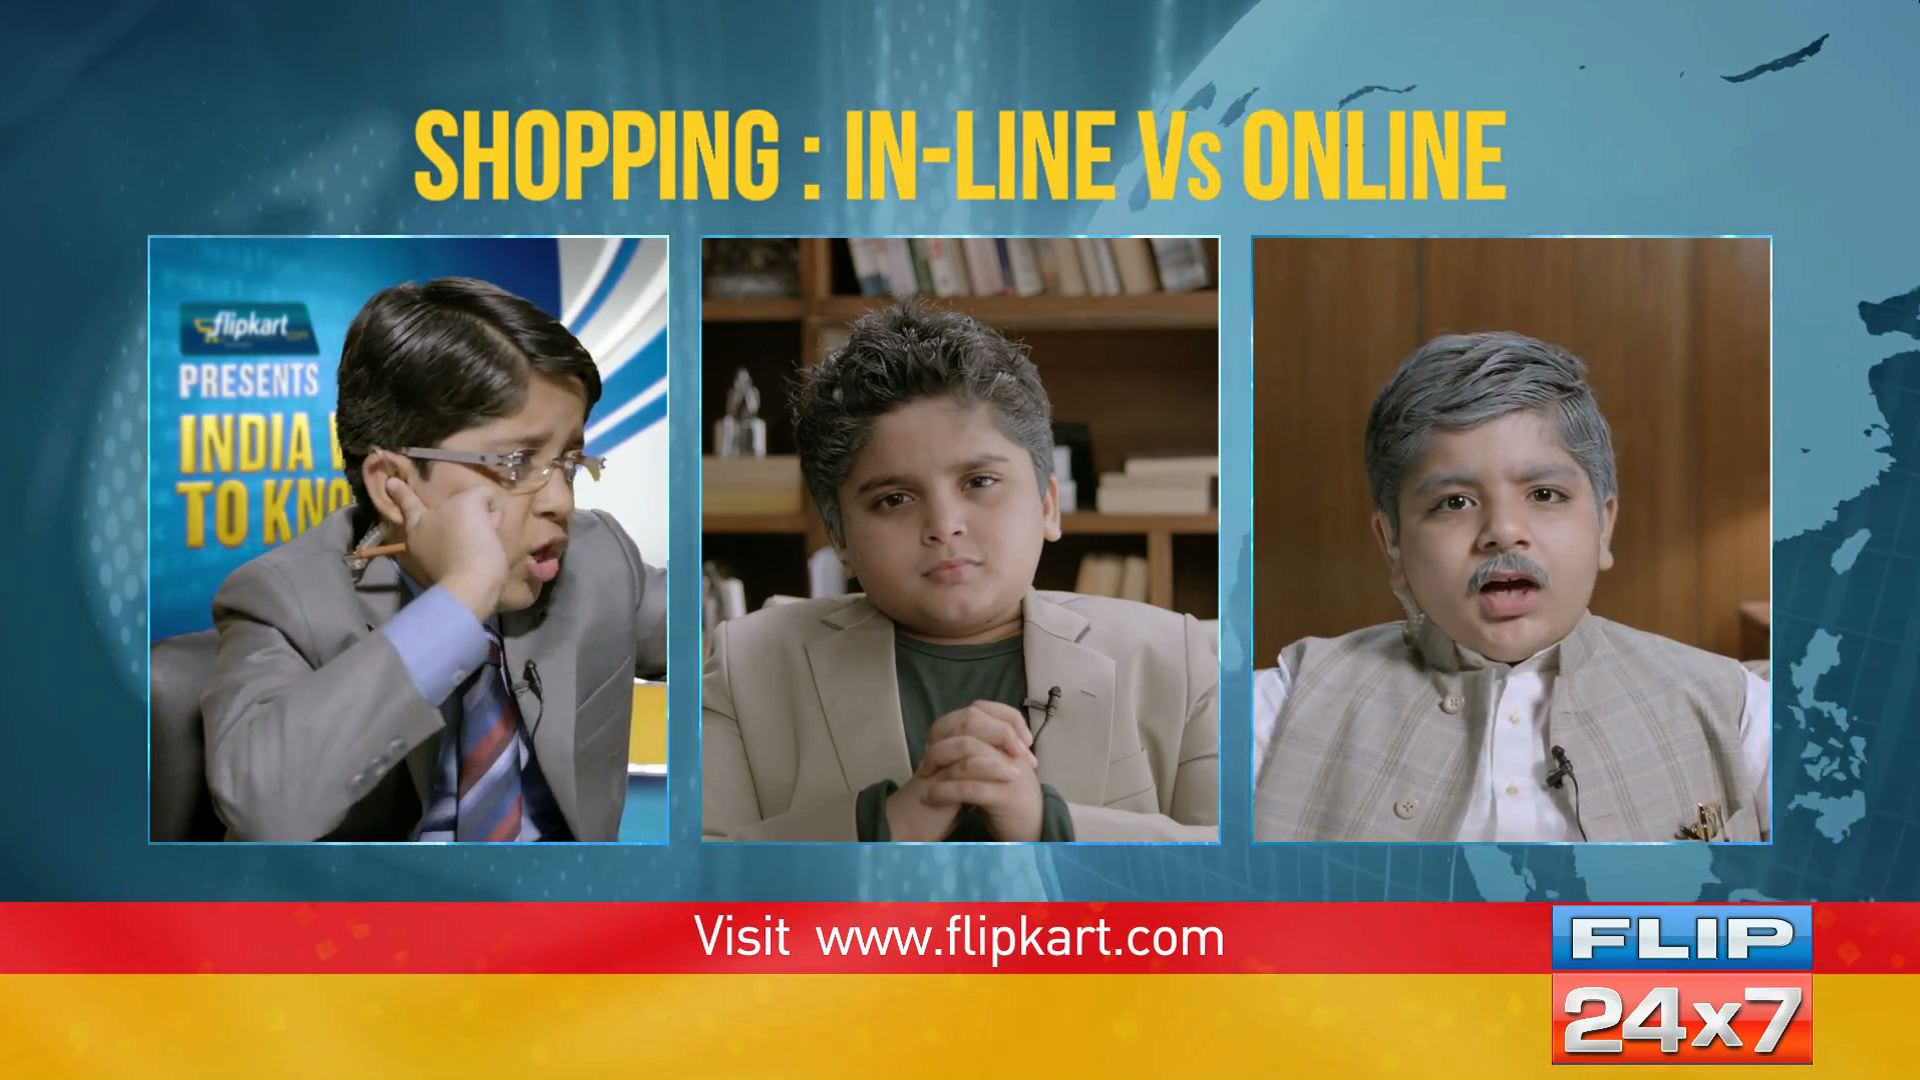 Flipkart tells Indians what we want to know